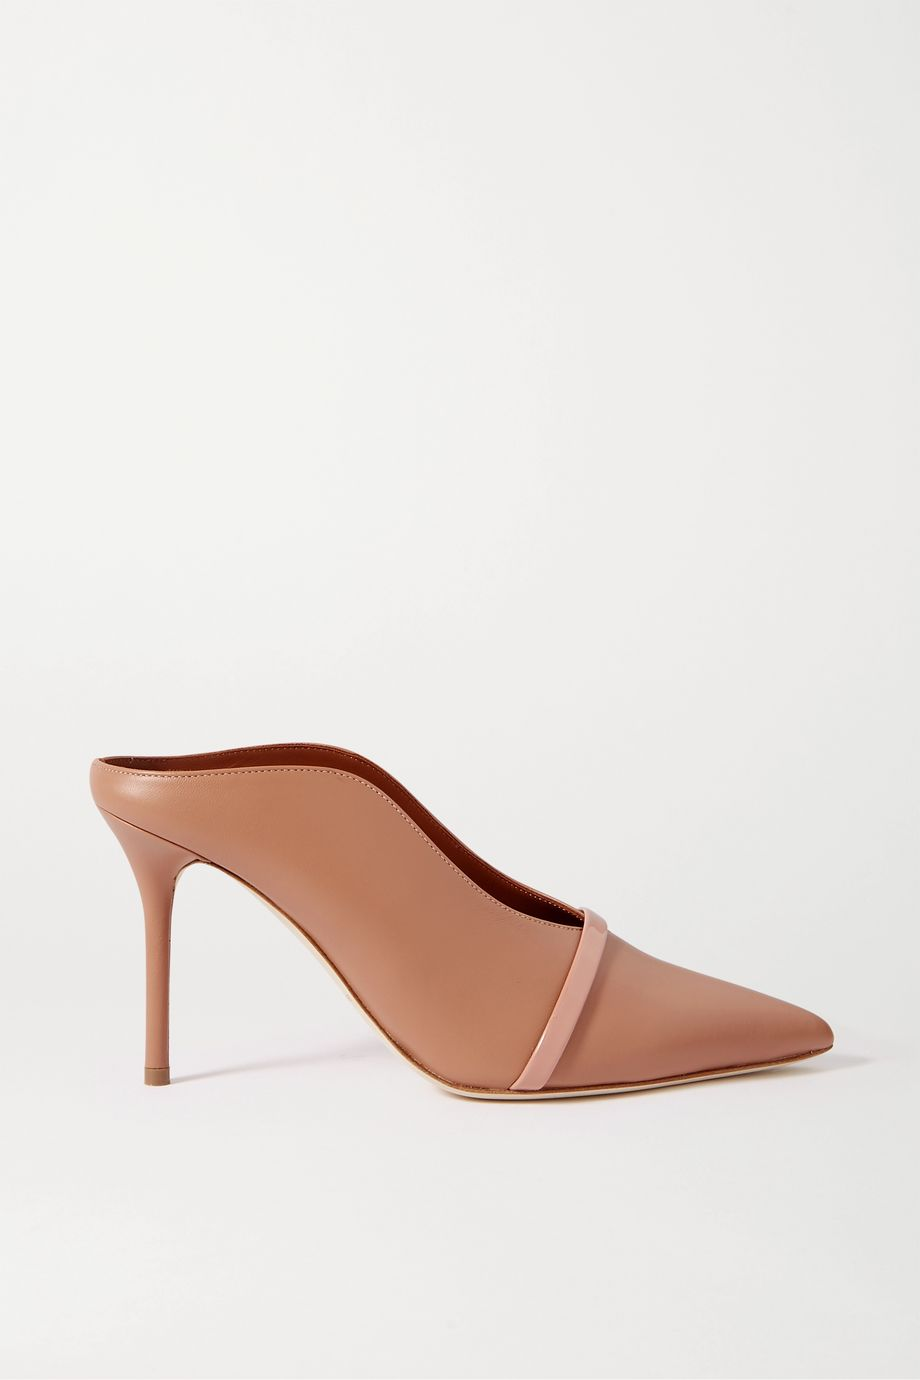 Malone Souliers Constance 85 smooth and patent-leather mules